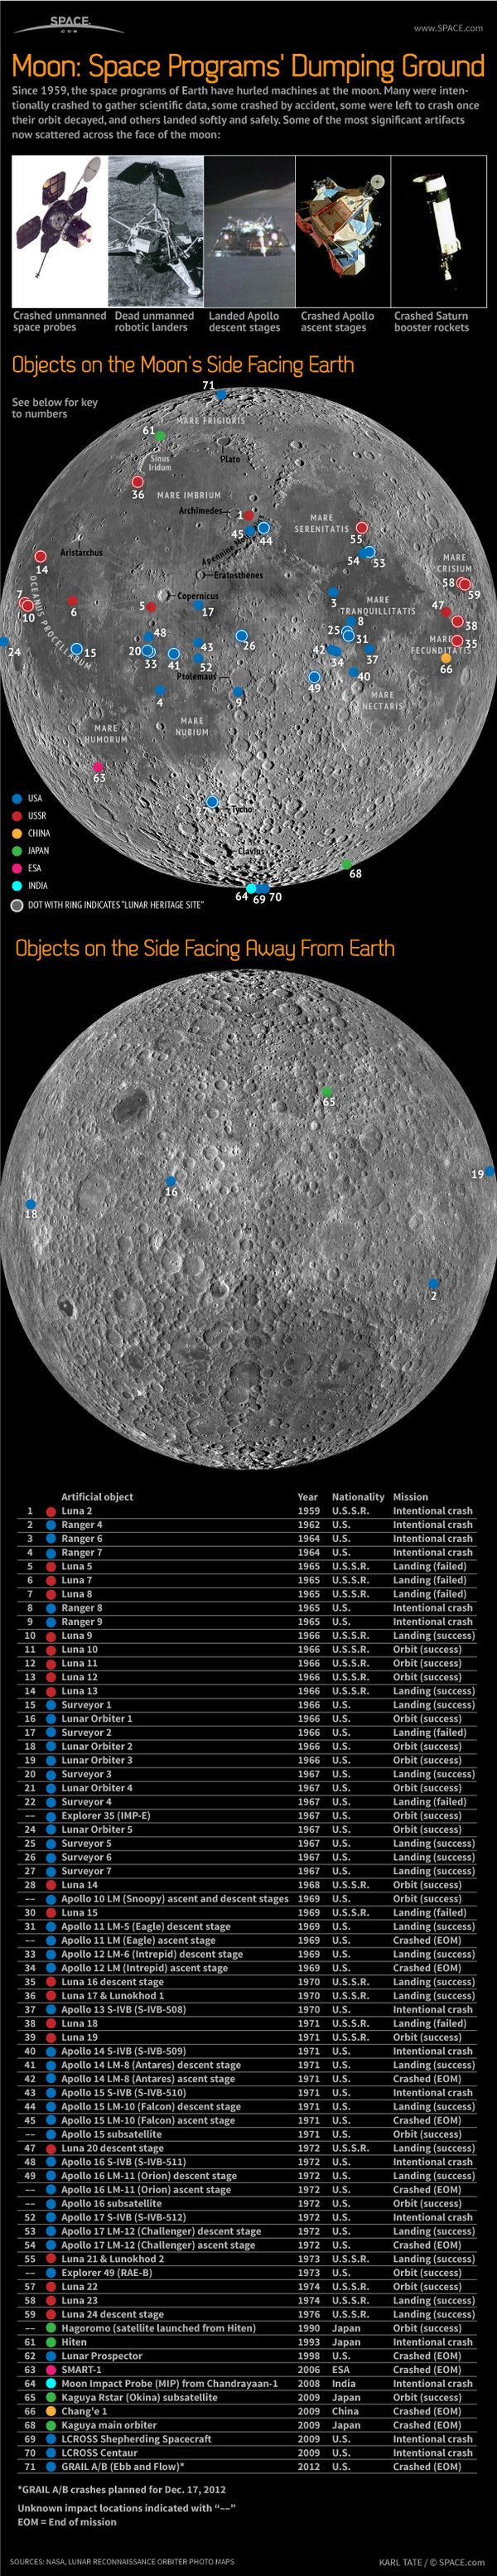 Moon: Space Programs' Dumping Ground (Infographic)